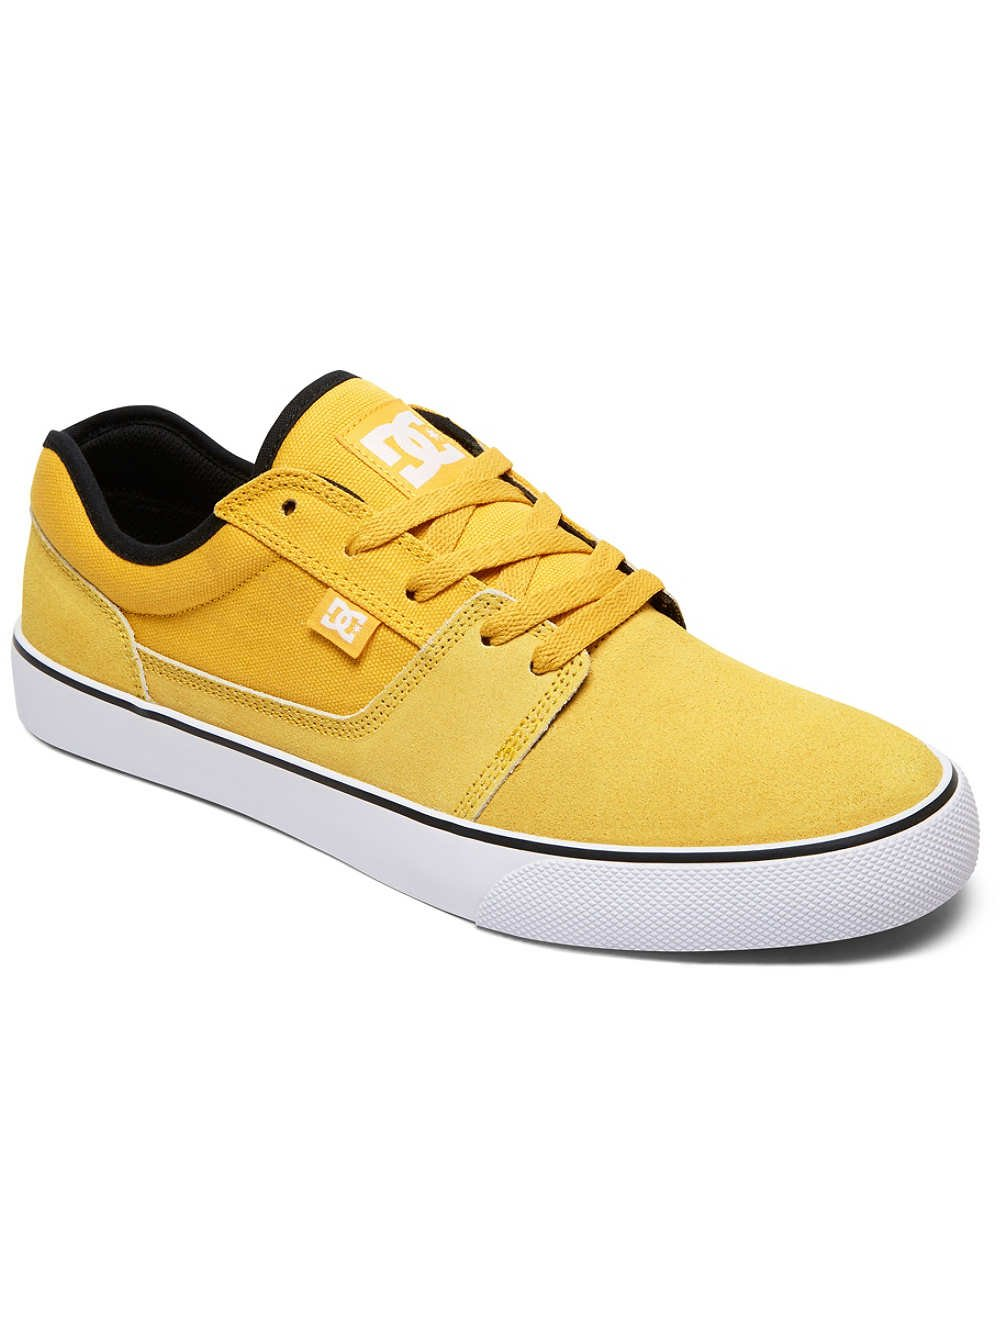 DC TONIK Unisex-Erwachsene Sneakers  45 EU|Yellow/Gold